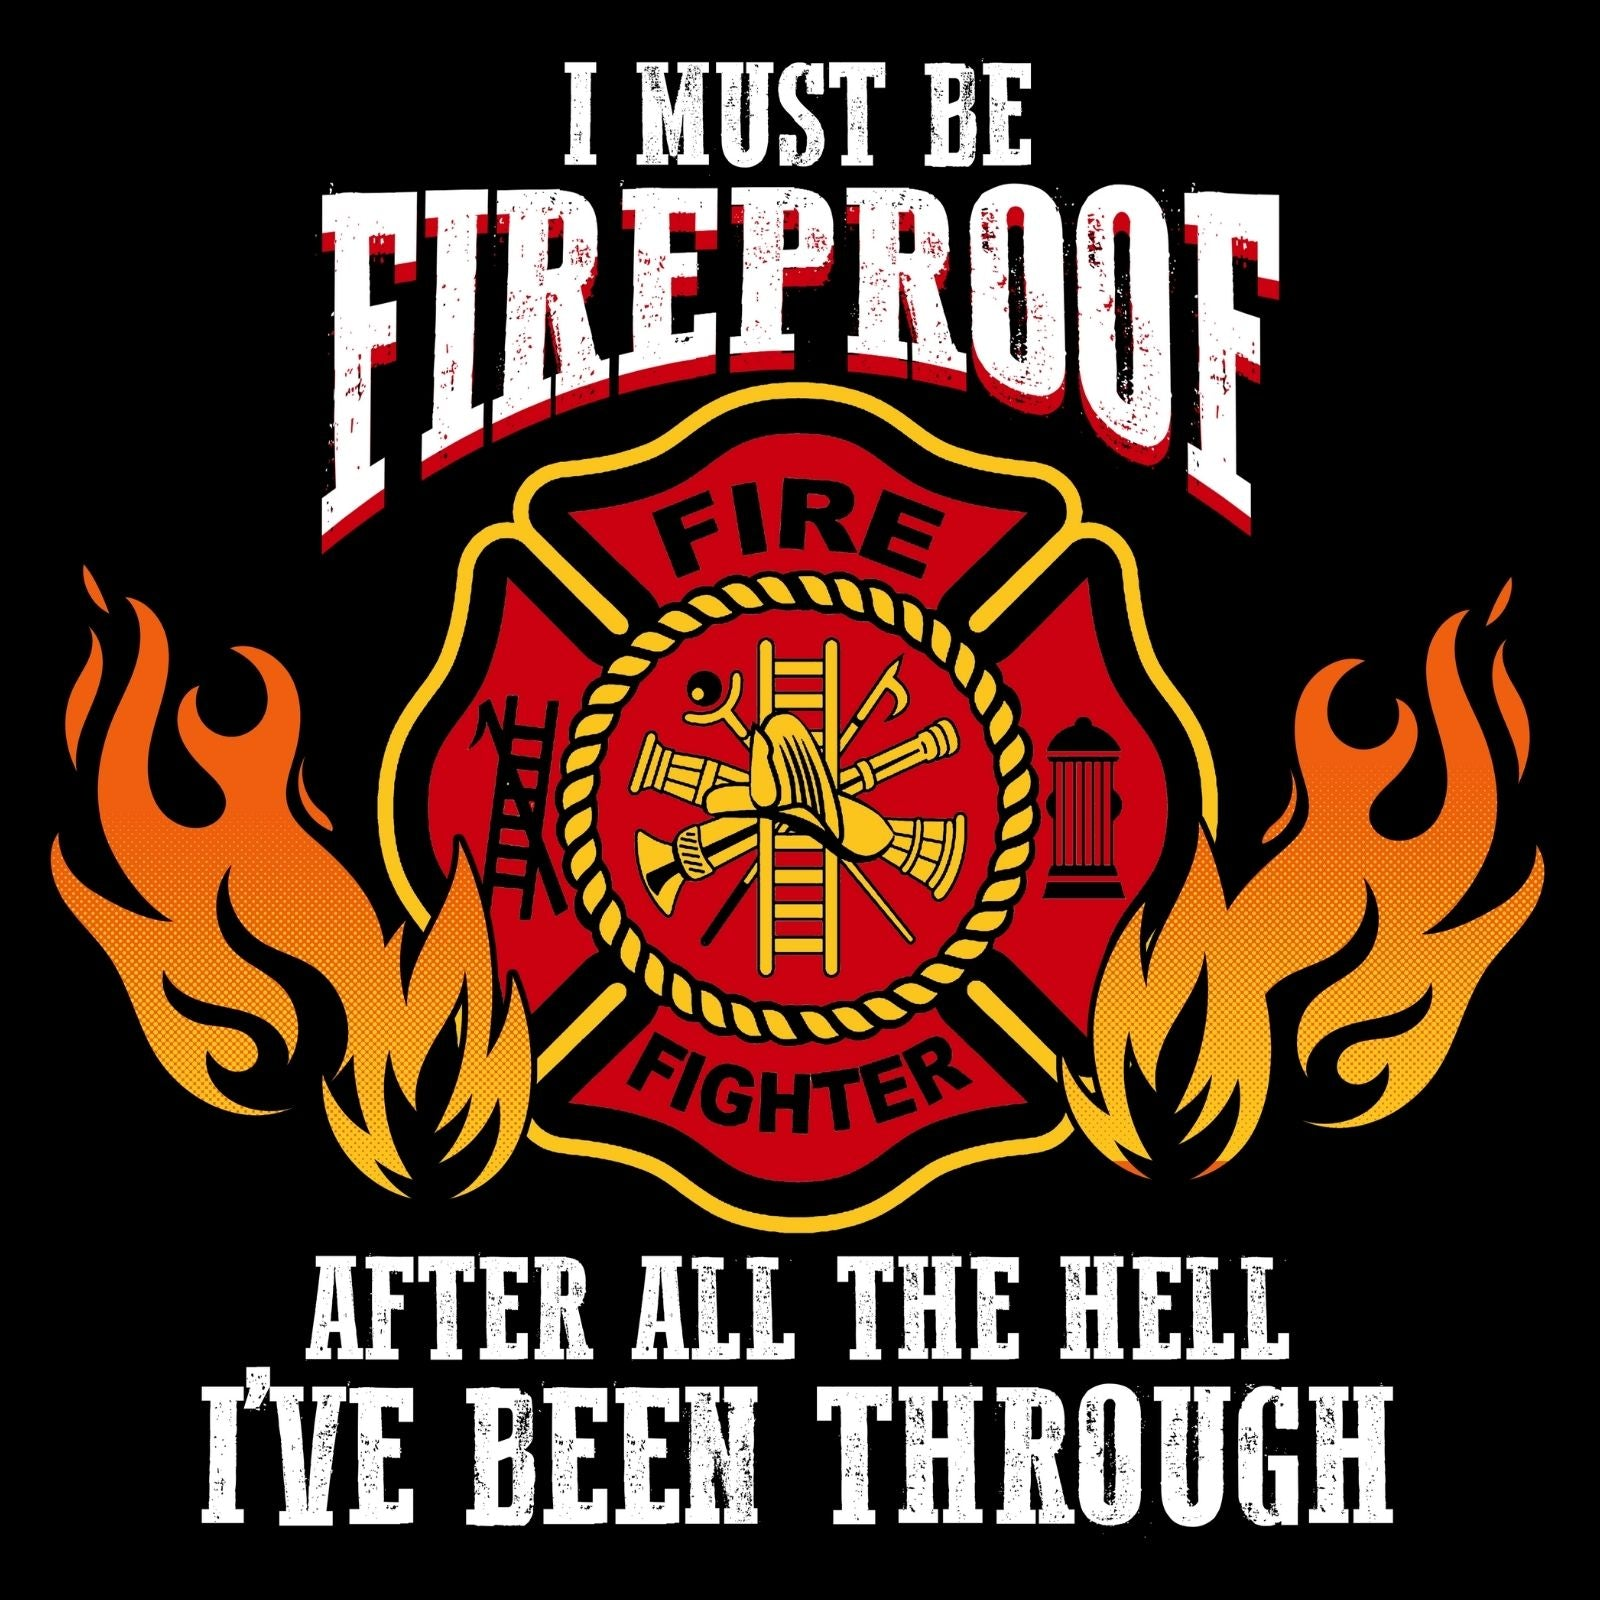 I Must Be Fireproof Afterall The Hell I've Been Through - Bastard Graphics